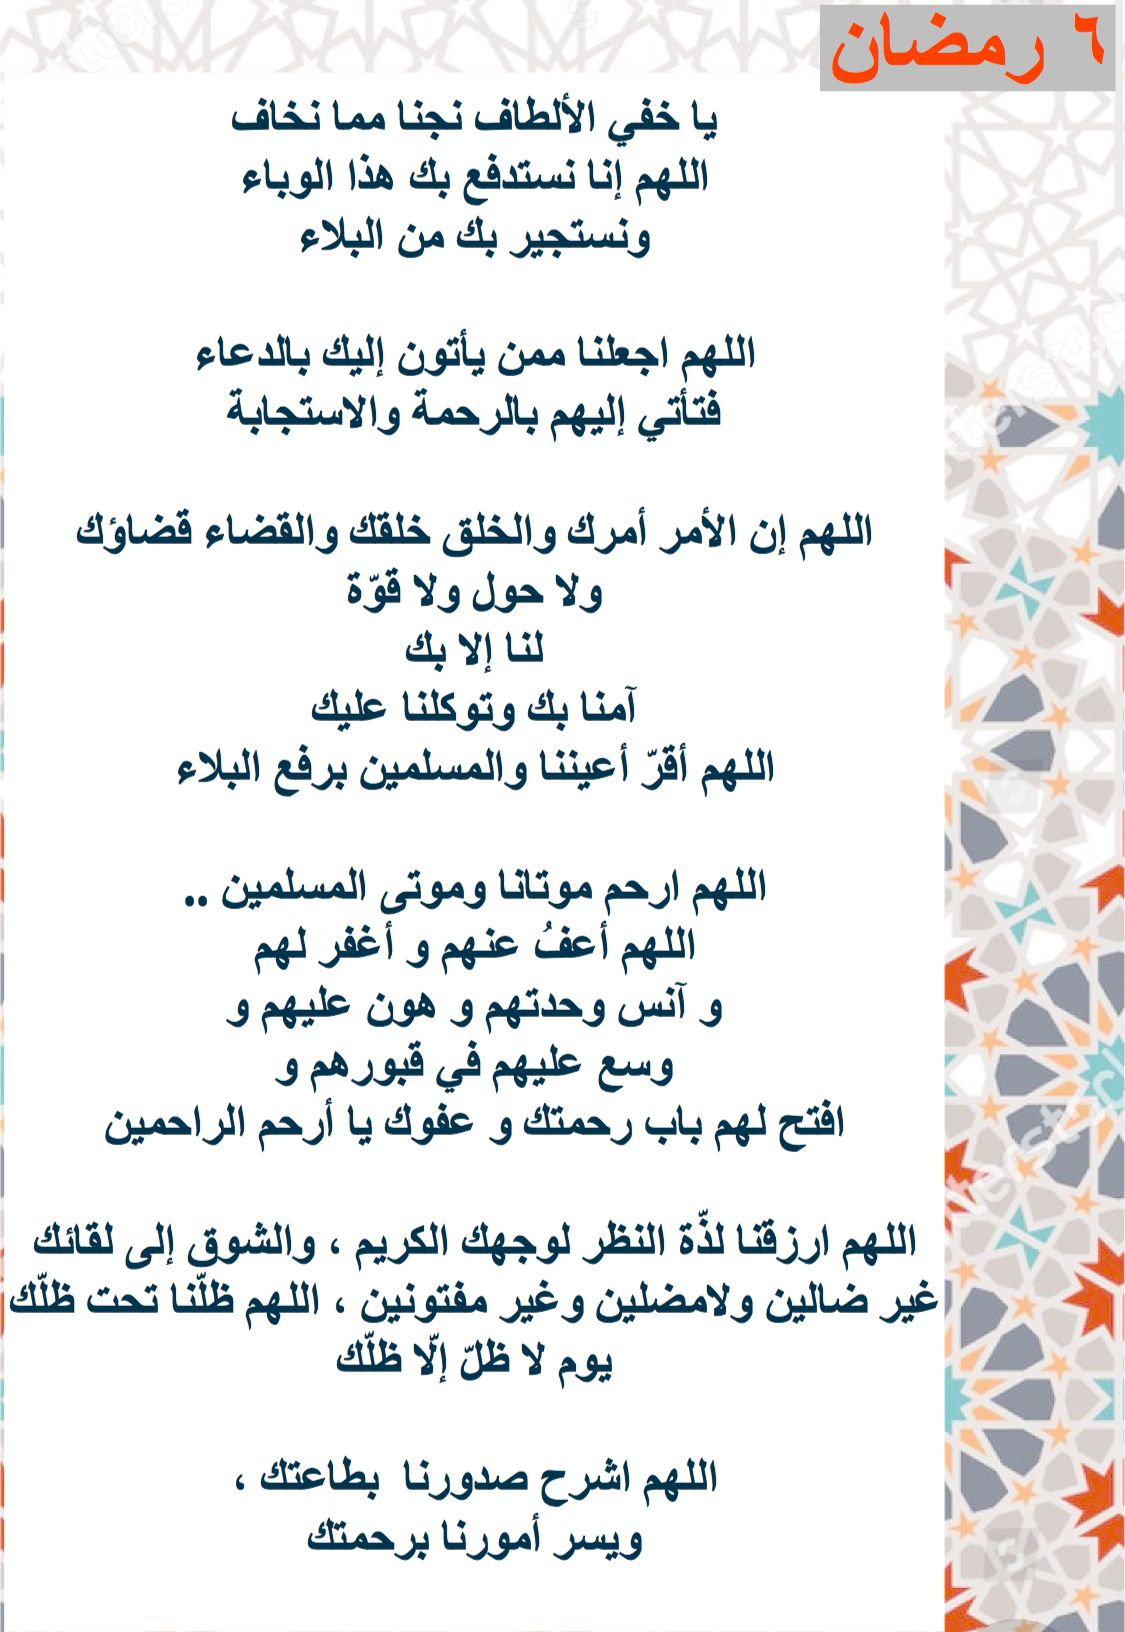 Pin By أحلام On Duaa Word Search Puzzle Words Word Search